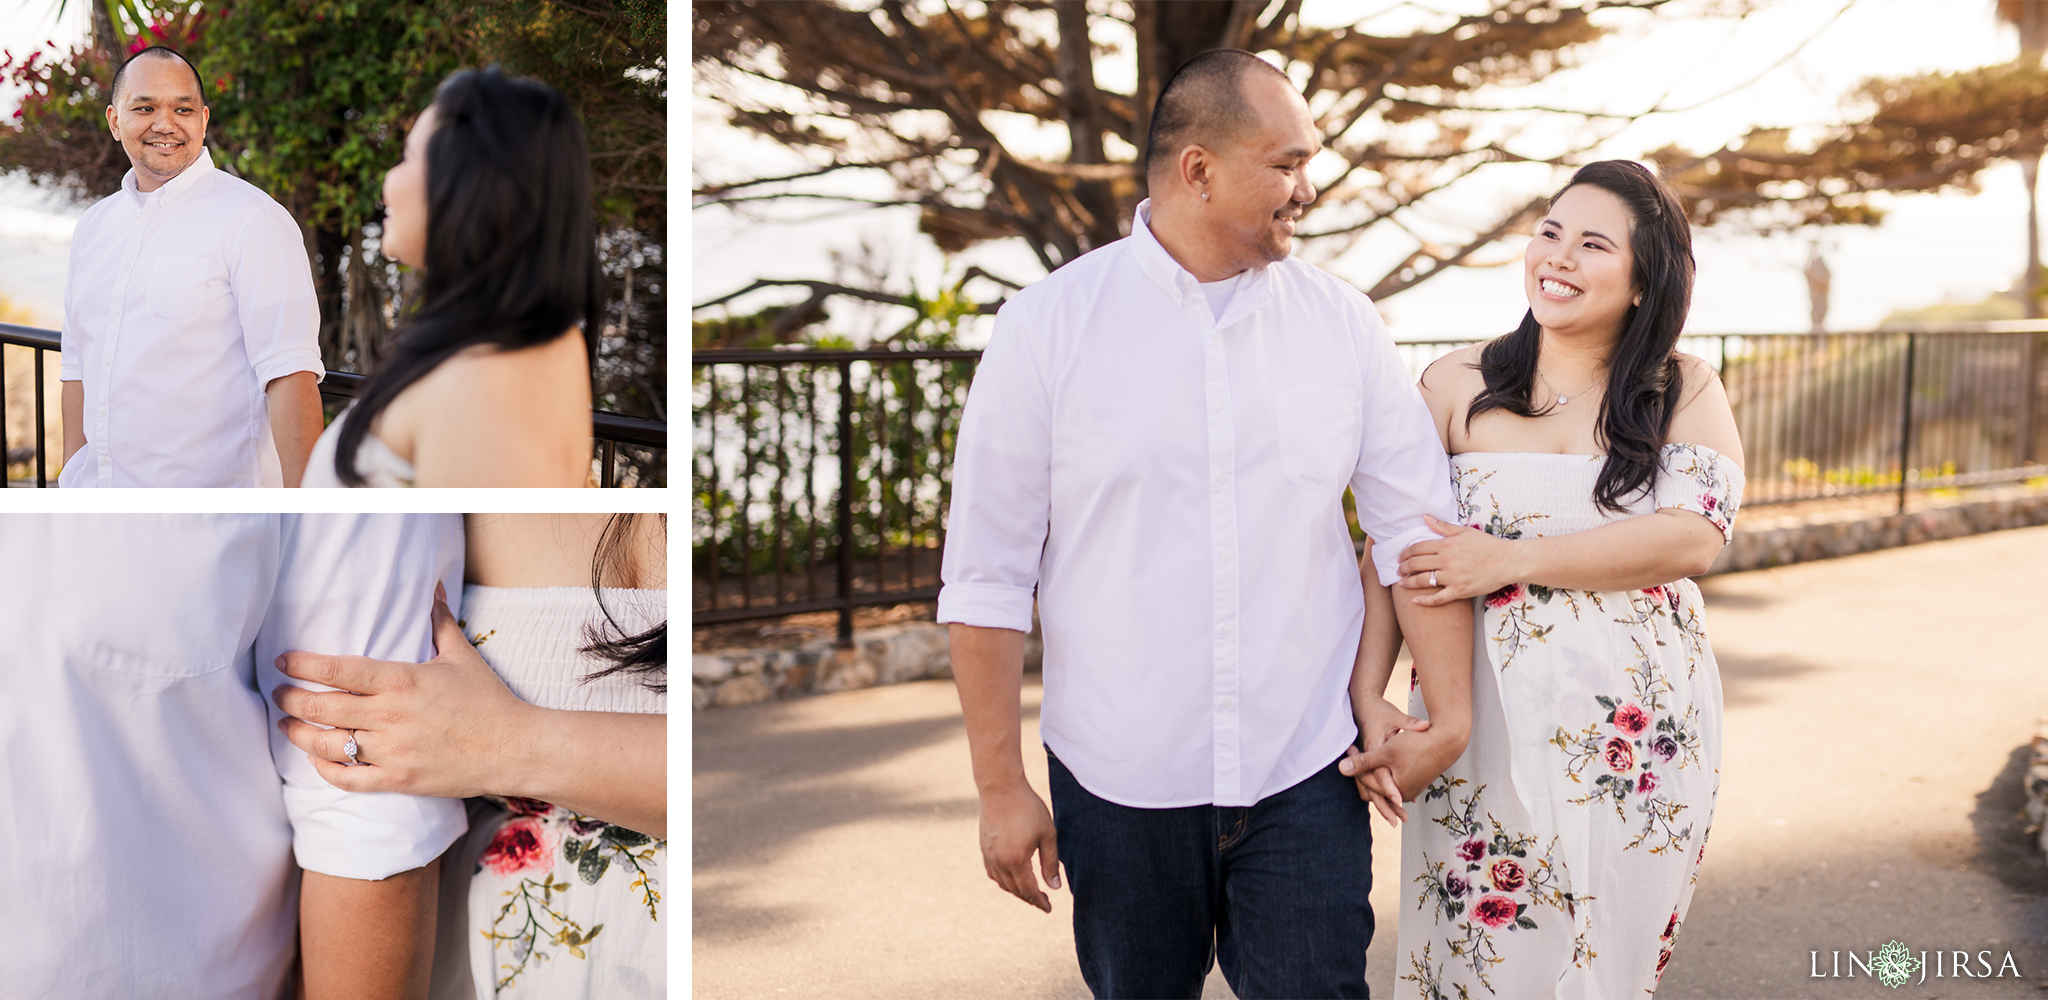 02 Heisler Park Orange County Engagement Photographer